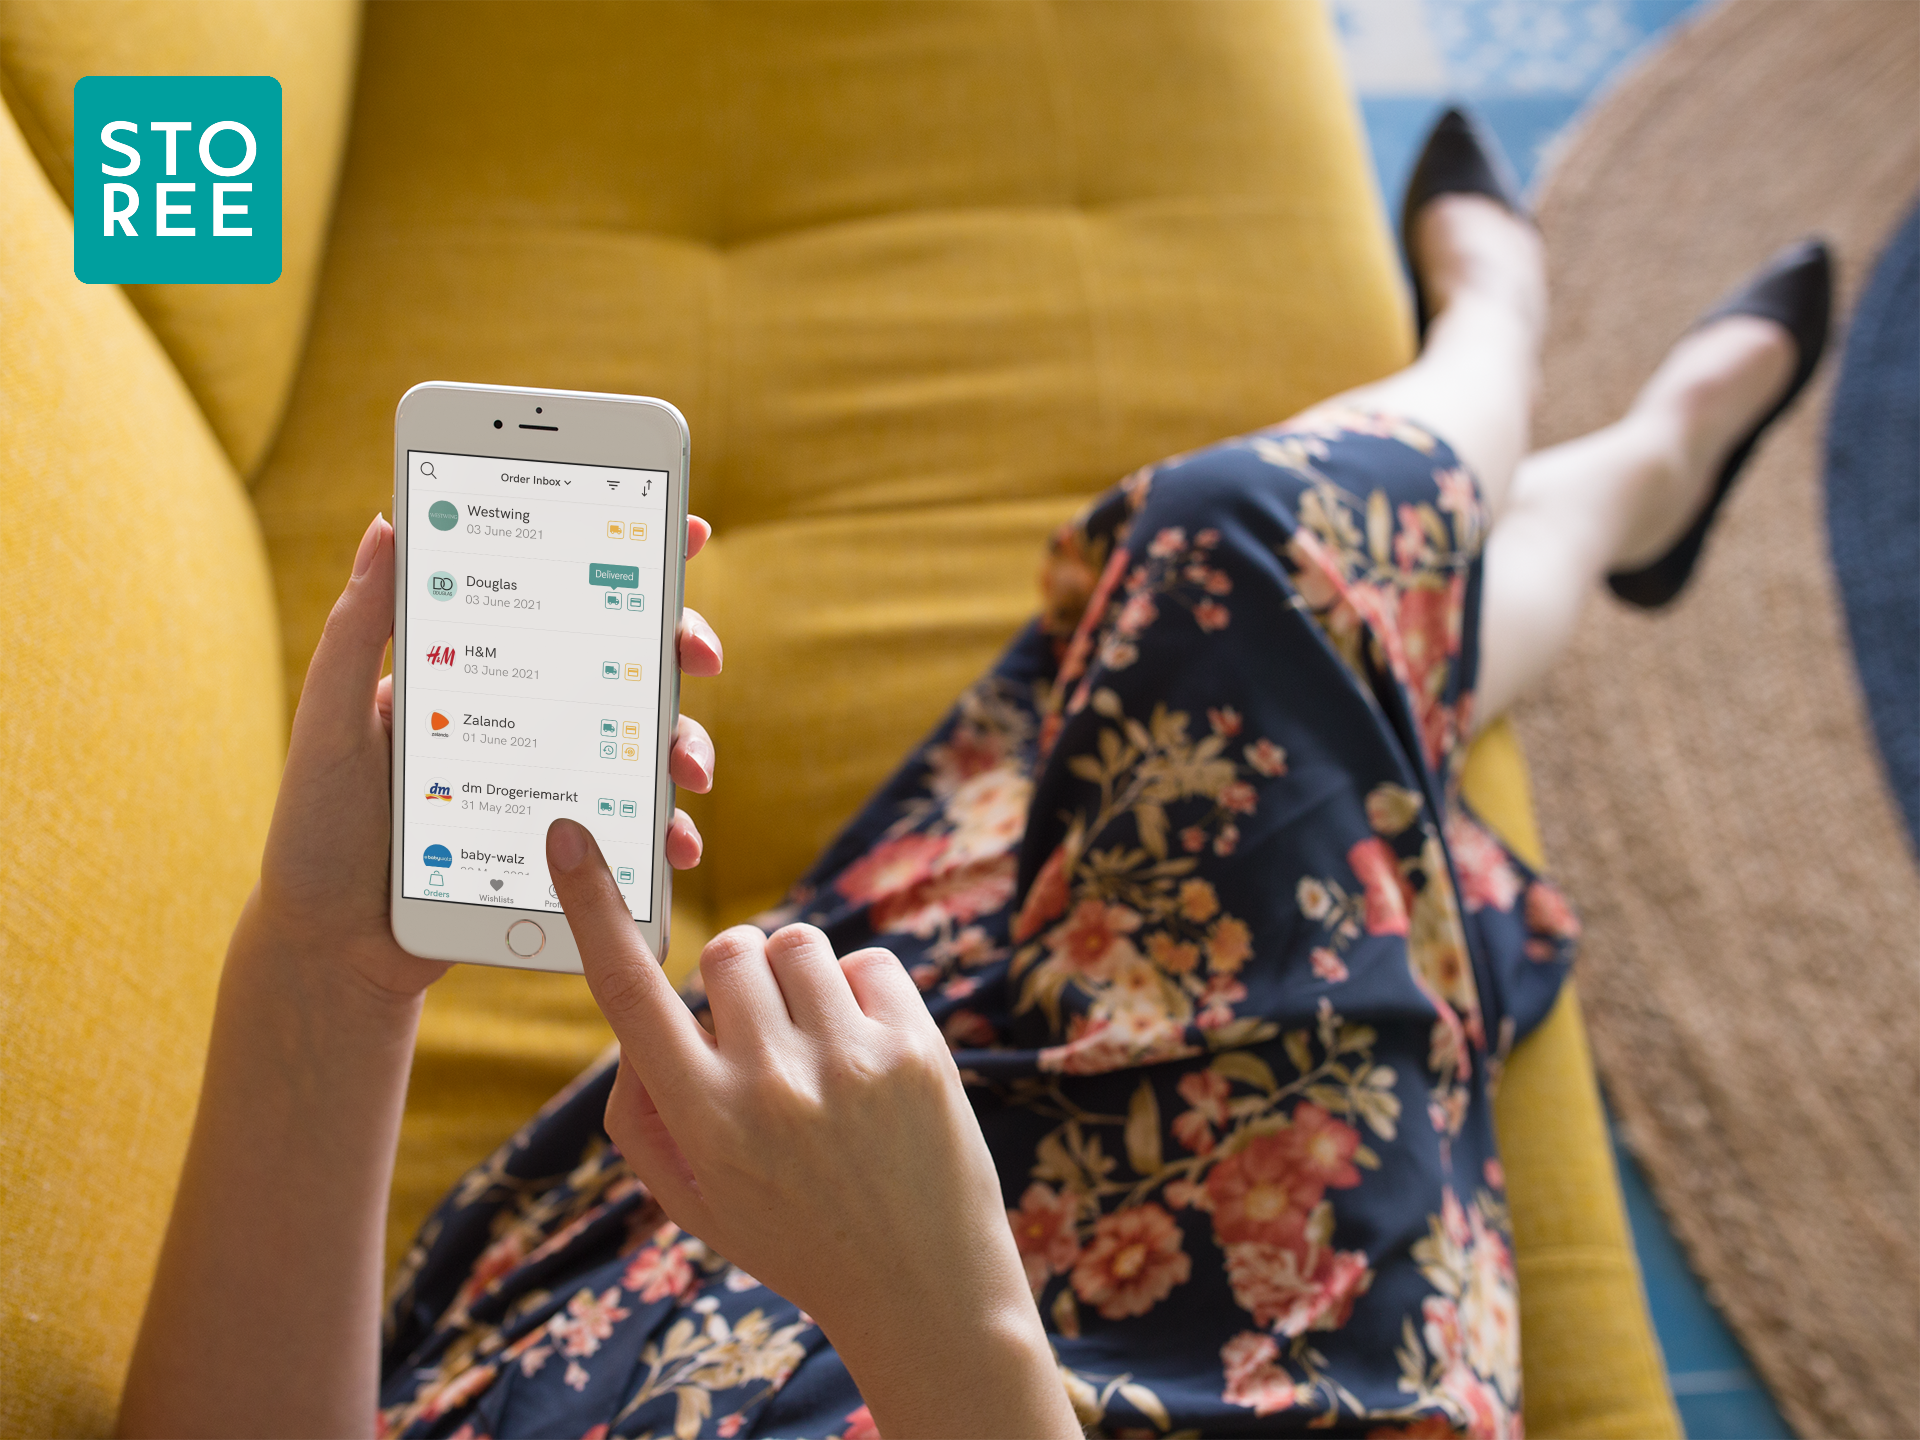 STOREE - All your online purchases at your fingertips